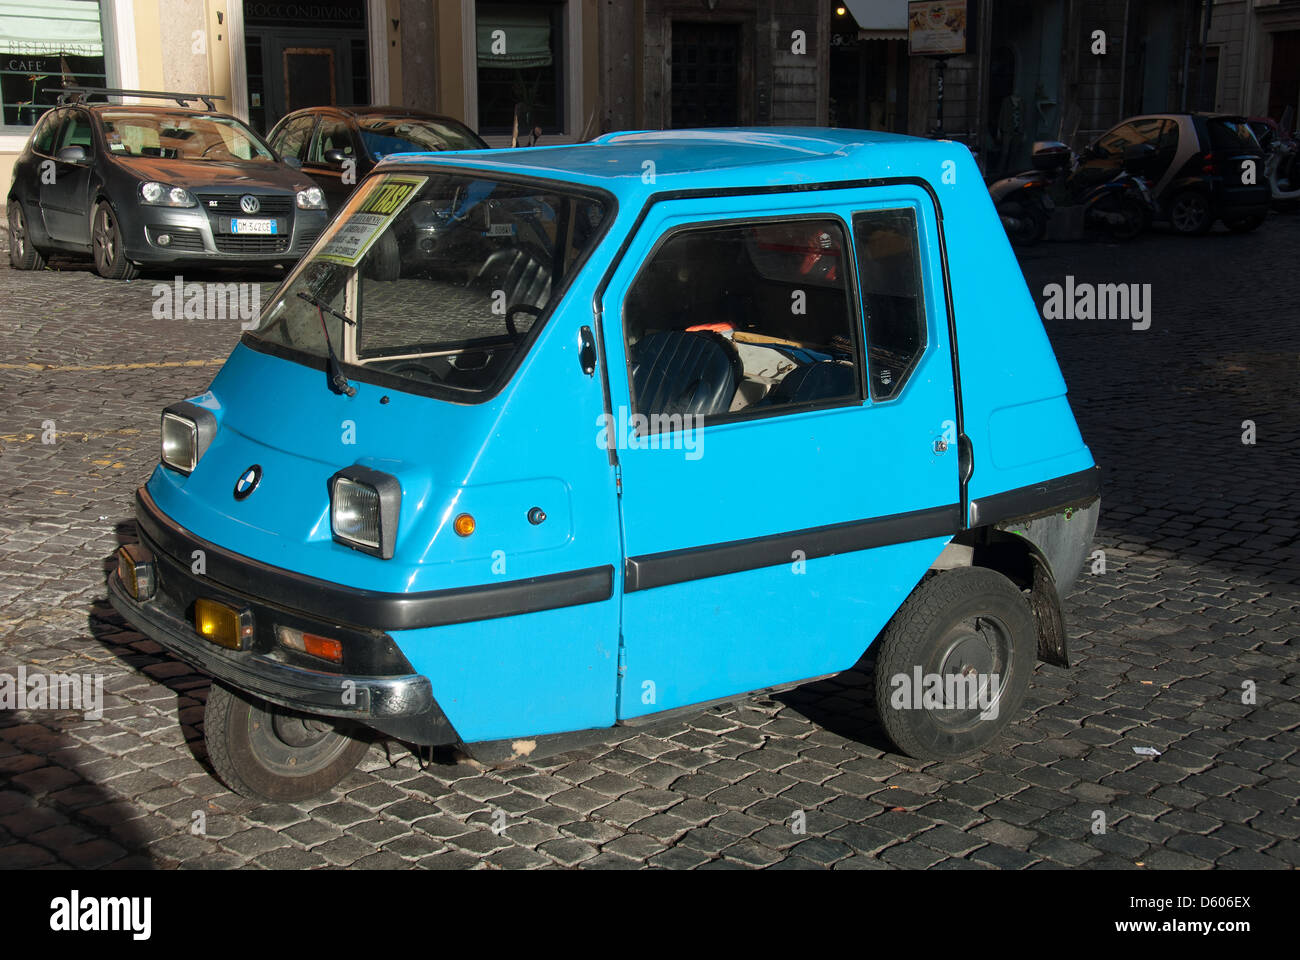 3 Wheel Car >> 3 Wheeled Car Stock Photos 3 Wheeled Car Stock Images Alamy